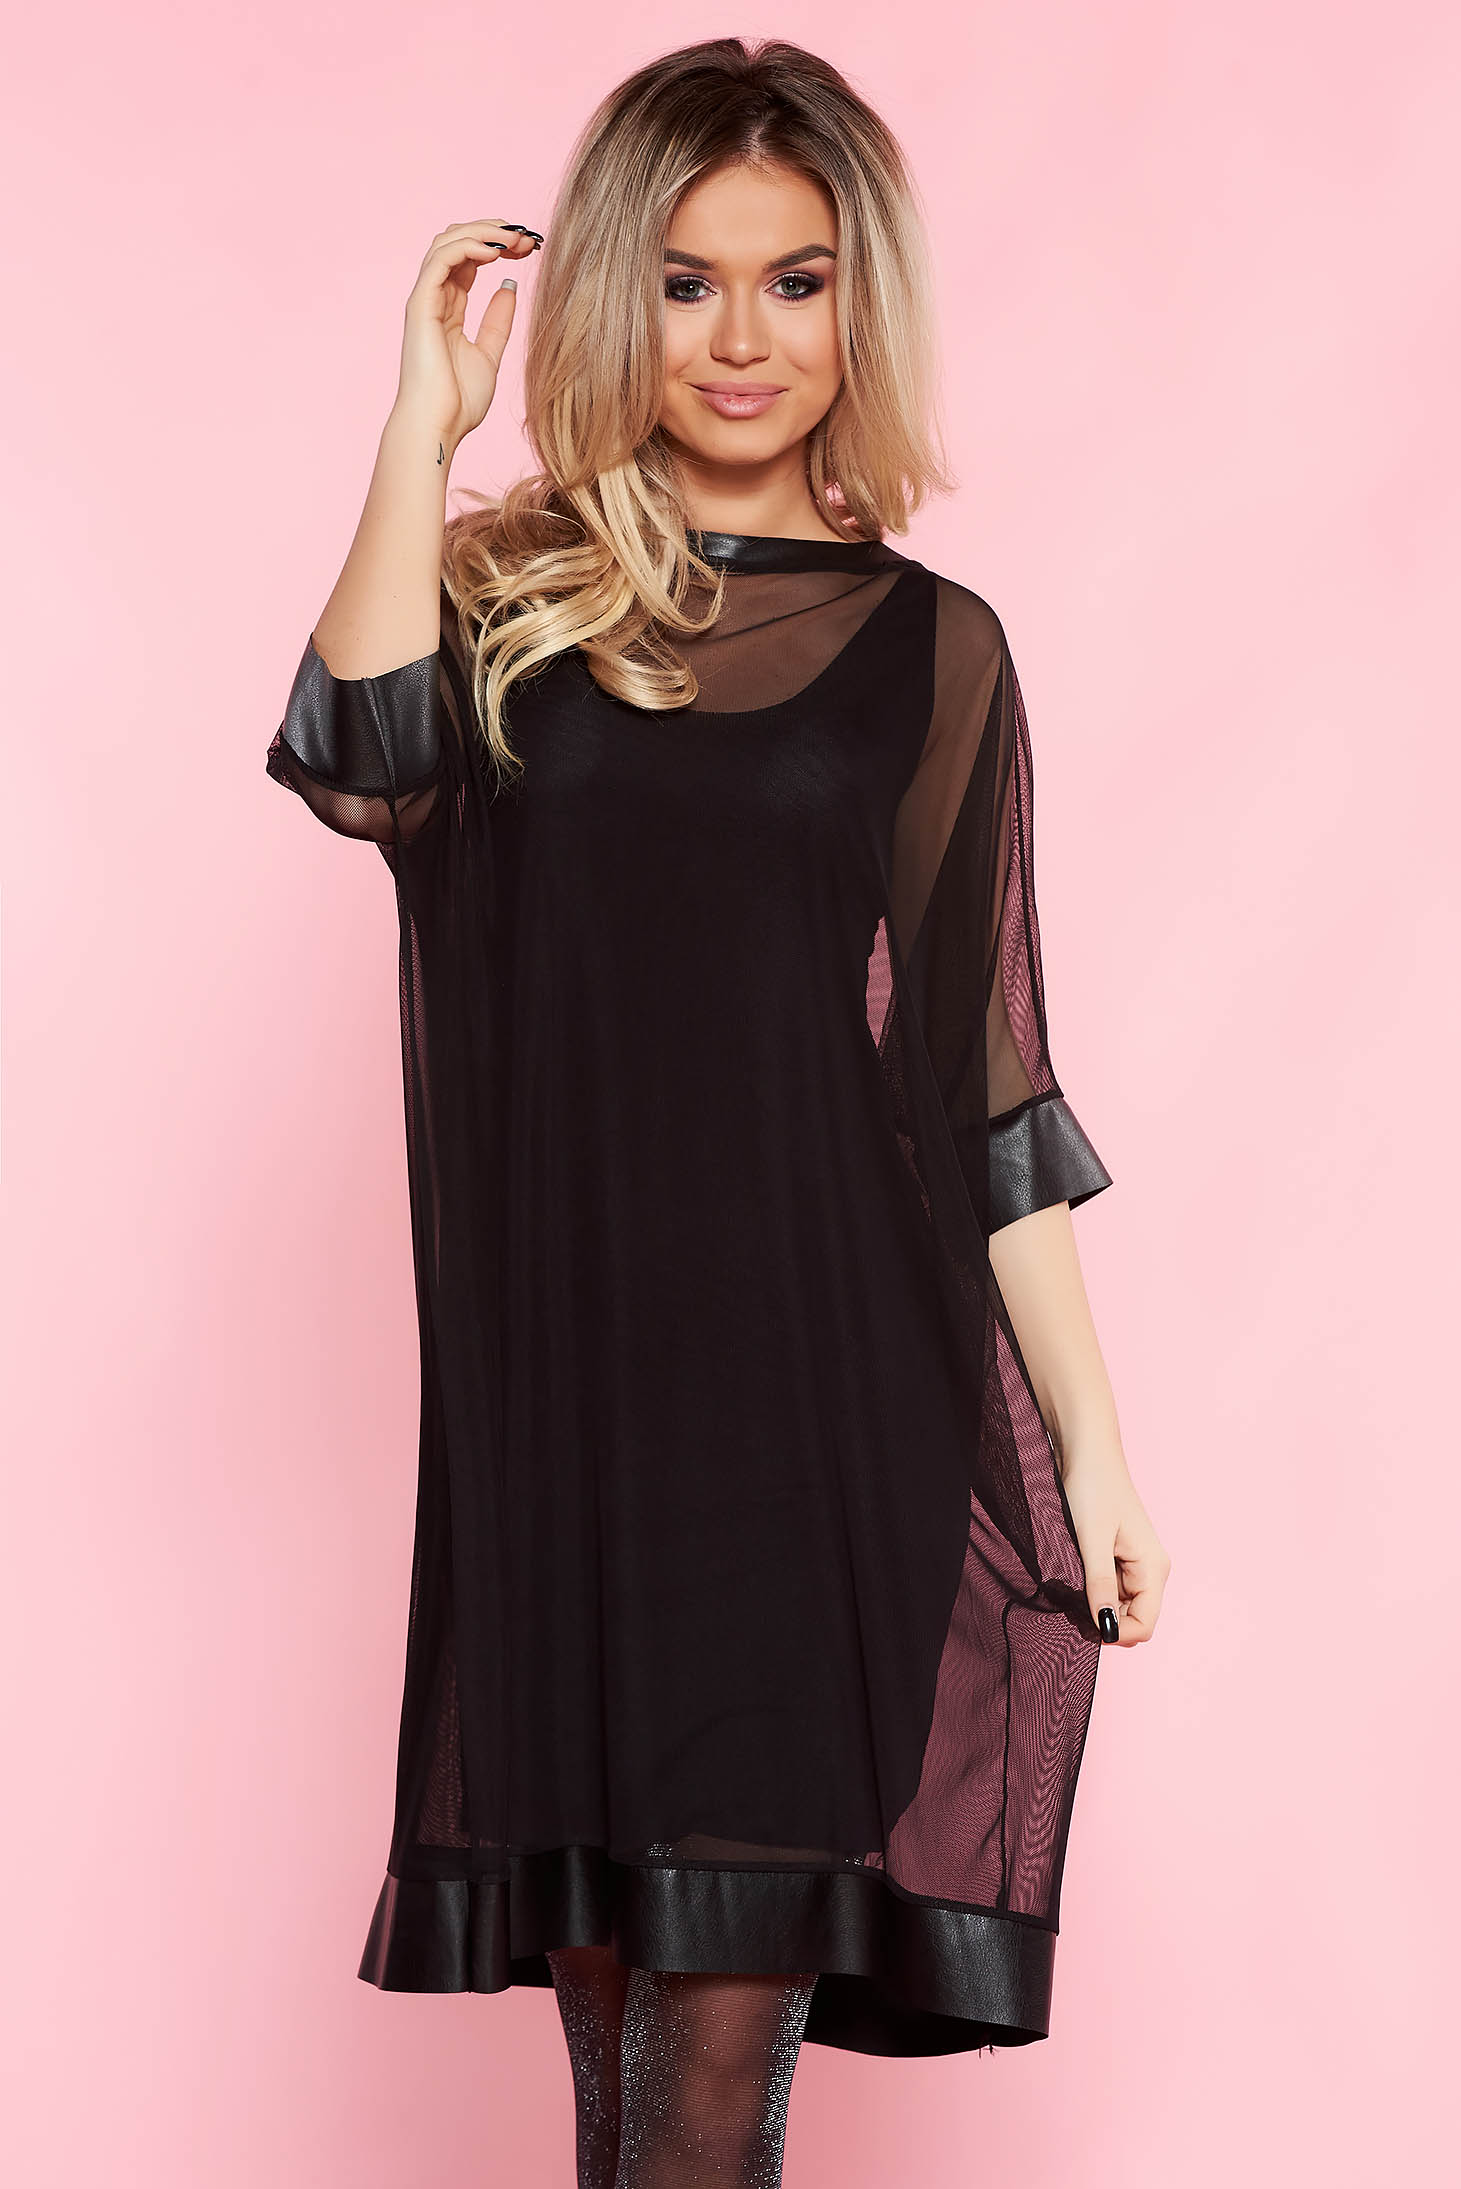 SunShine black clubbing flared dress from tulle with inside lining with faux leather details